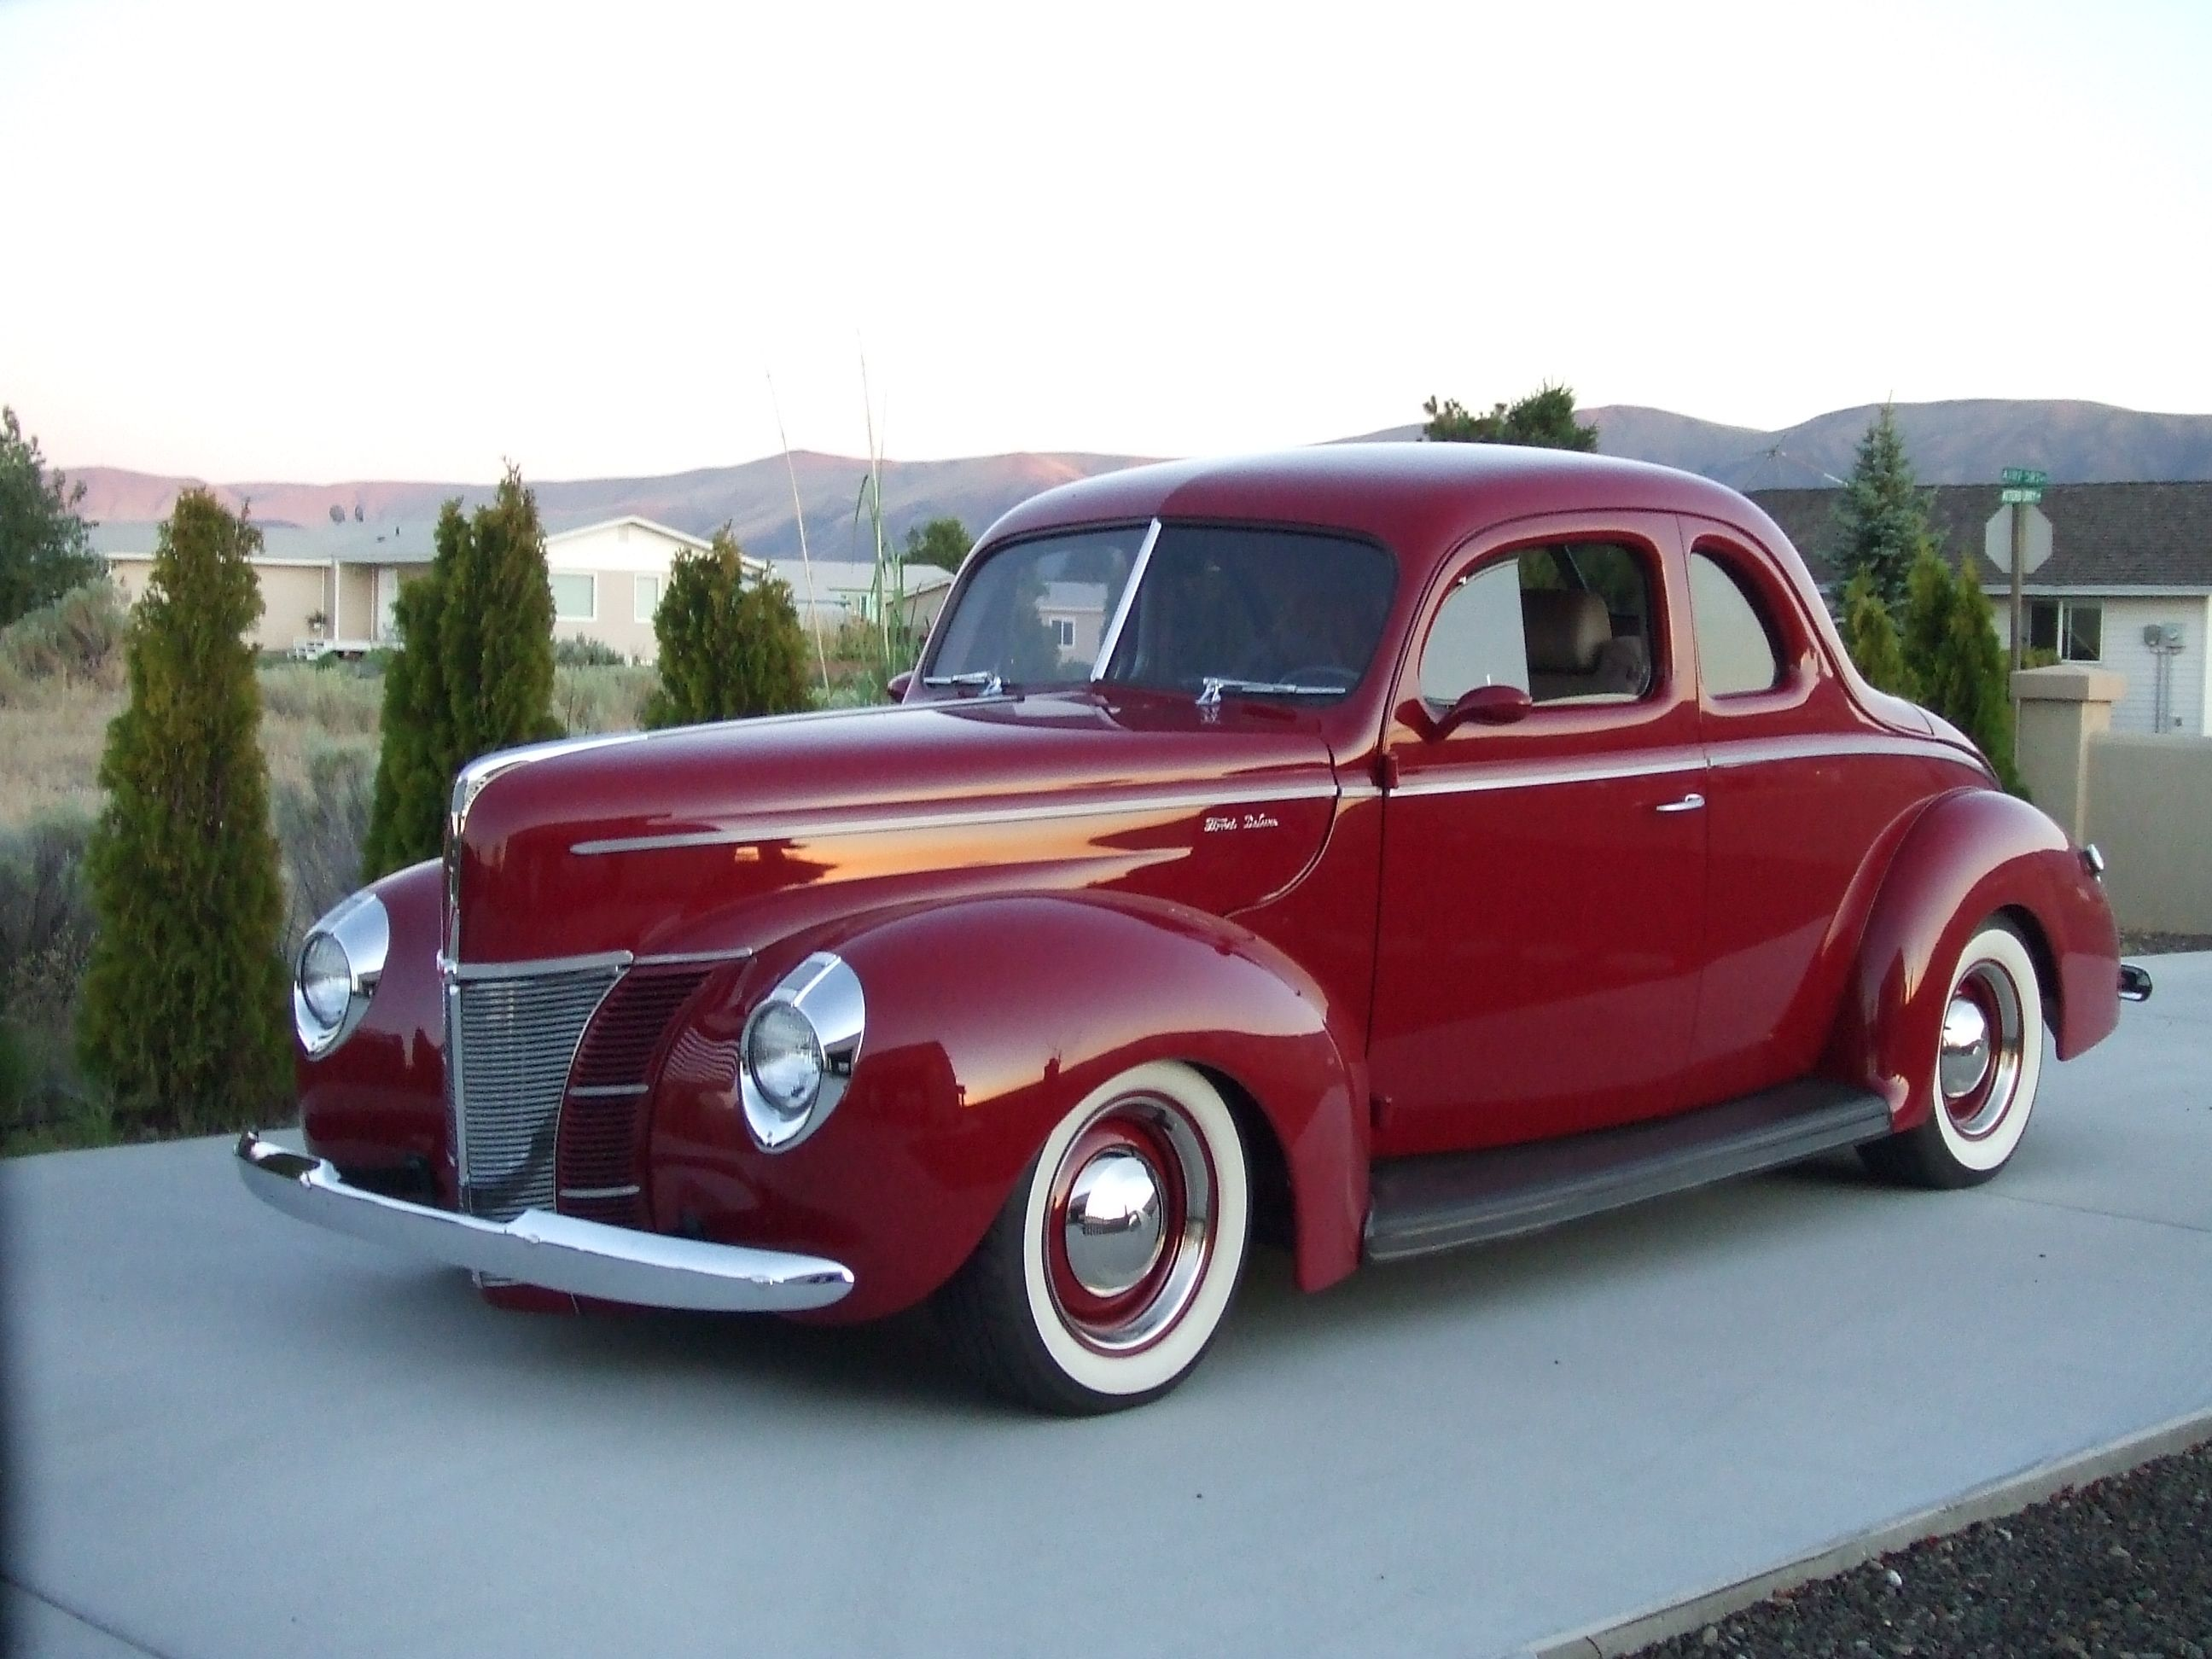 1940 Ford Coupe Ford Classic Cars Classic Cars Trucks Old